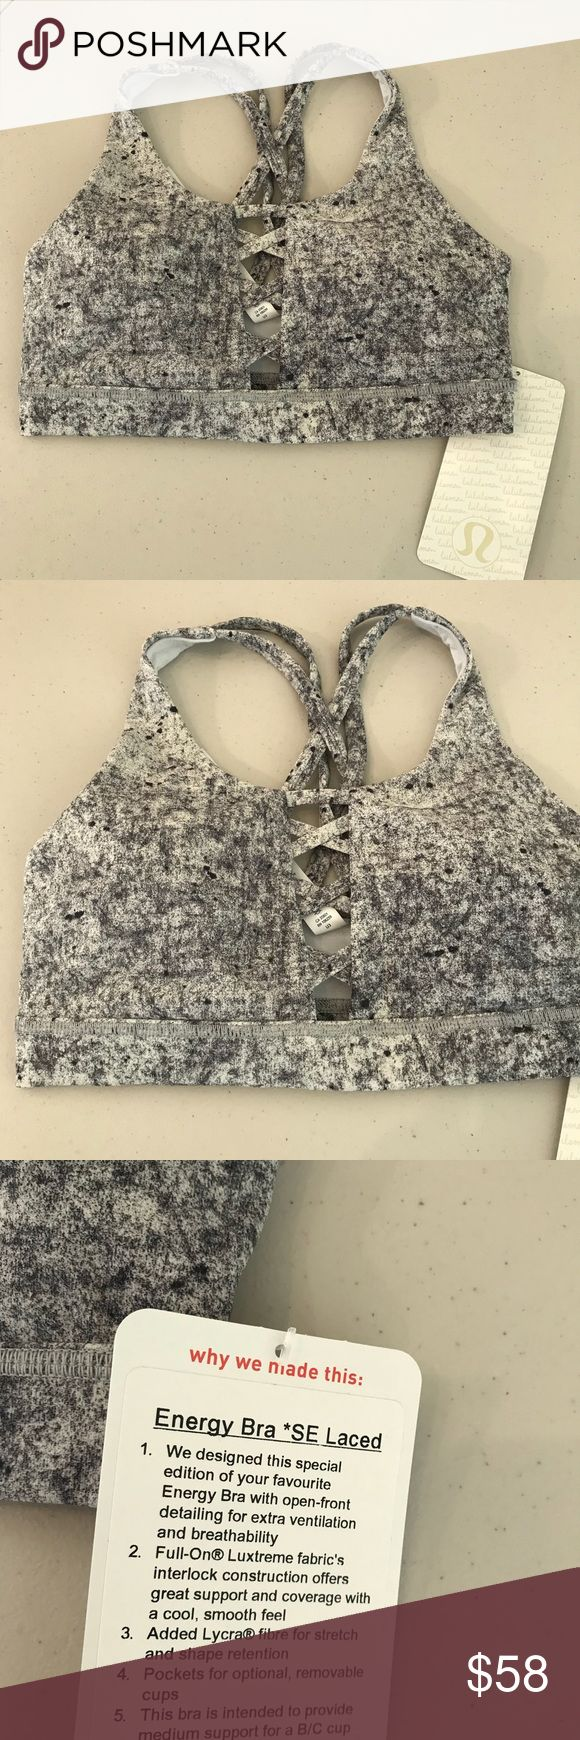 NWT ALPINE LULULEMON ENERGY BRA LACED SE - Size 4 Brand: Lululemon Athletica Energy bra white laced SE            Condition: New with tag || Size 4 || Antiqued alpine white multi     📌NO  TRADES  🛑NO LOWBALL OFFERS  ⛔️NO RUDE COMMENTS  🚷NO MODELING  ☀️Please don't discuss prices in the comment box. Make a reasonable offer and I'll either counter, accept or decline.   I will try to respond to all inquiries in a timely manner. Please check out the rest of my closet, I have various brands…